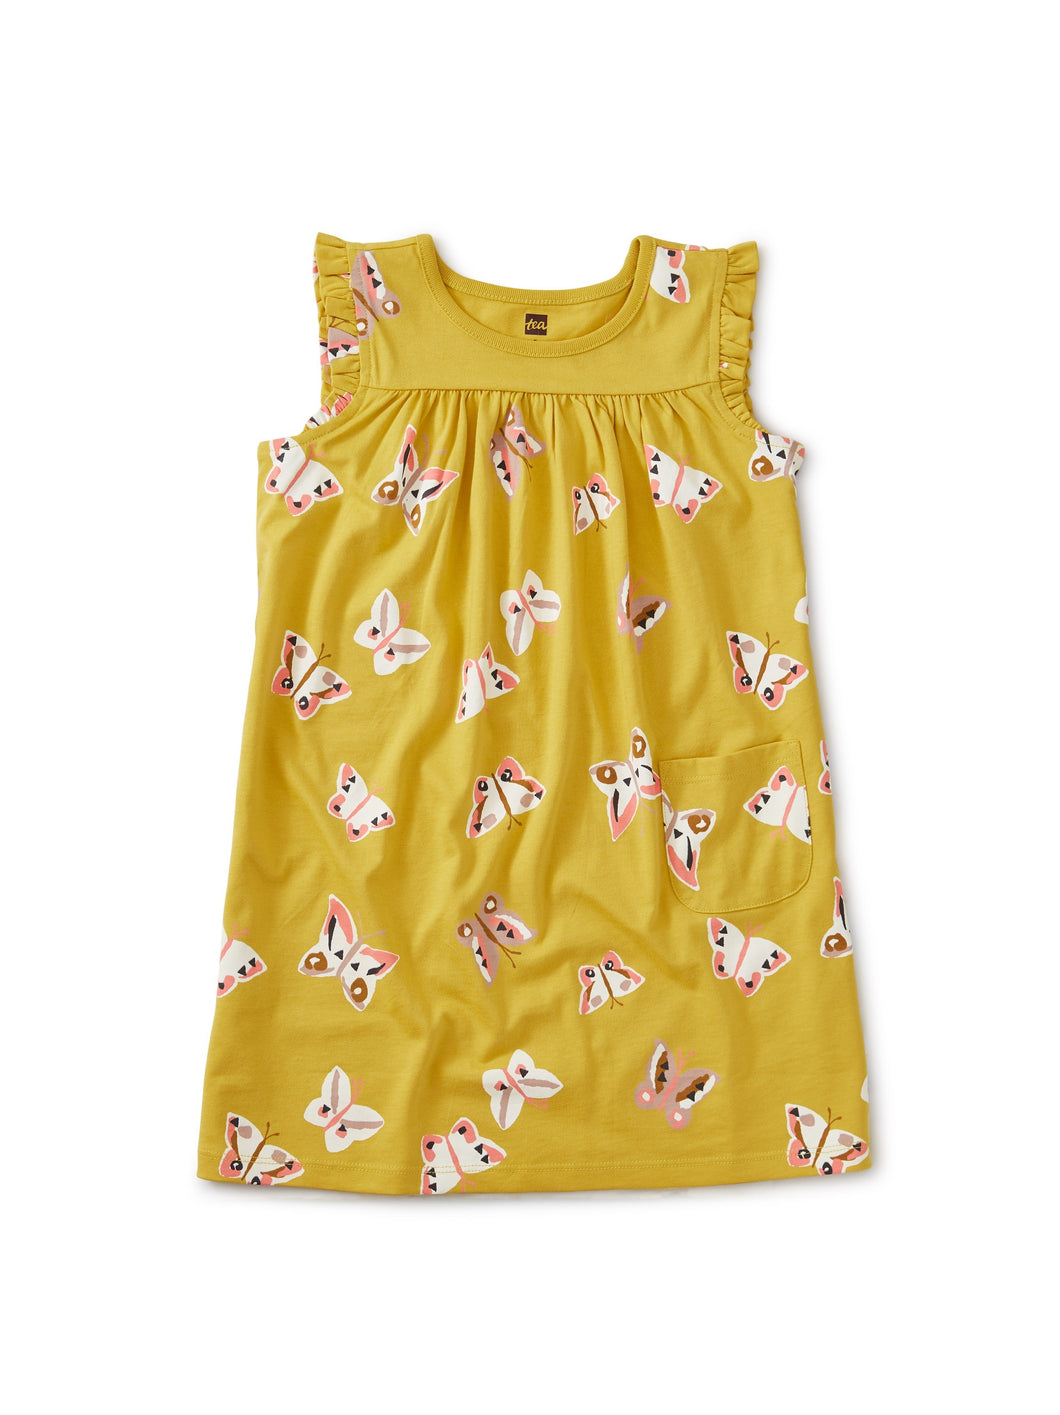 Tea Collection Mighty Mini Dress - Butterfly Acacia